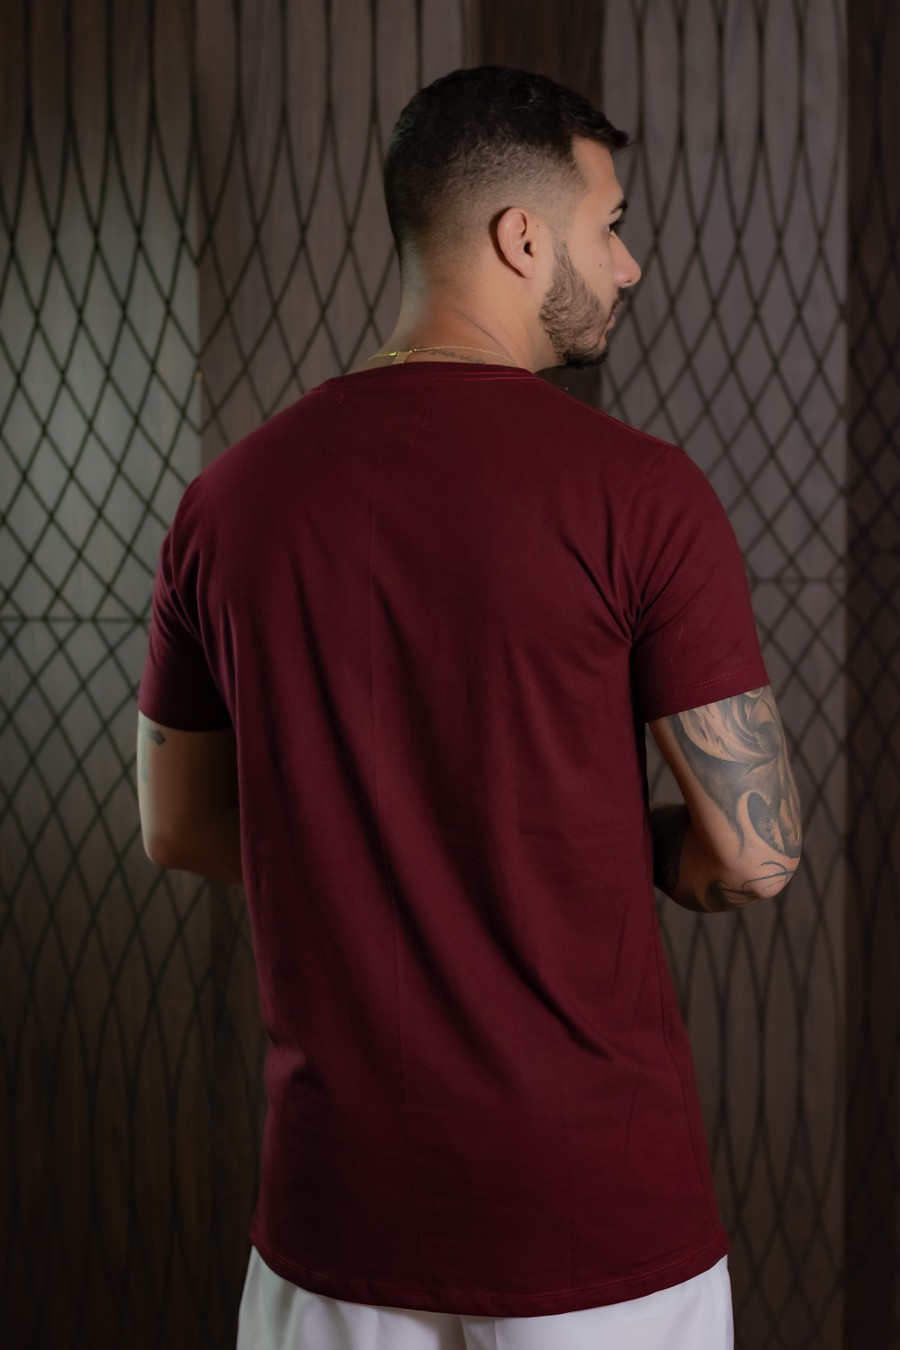 Camiseta Masculina bordô list